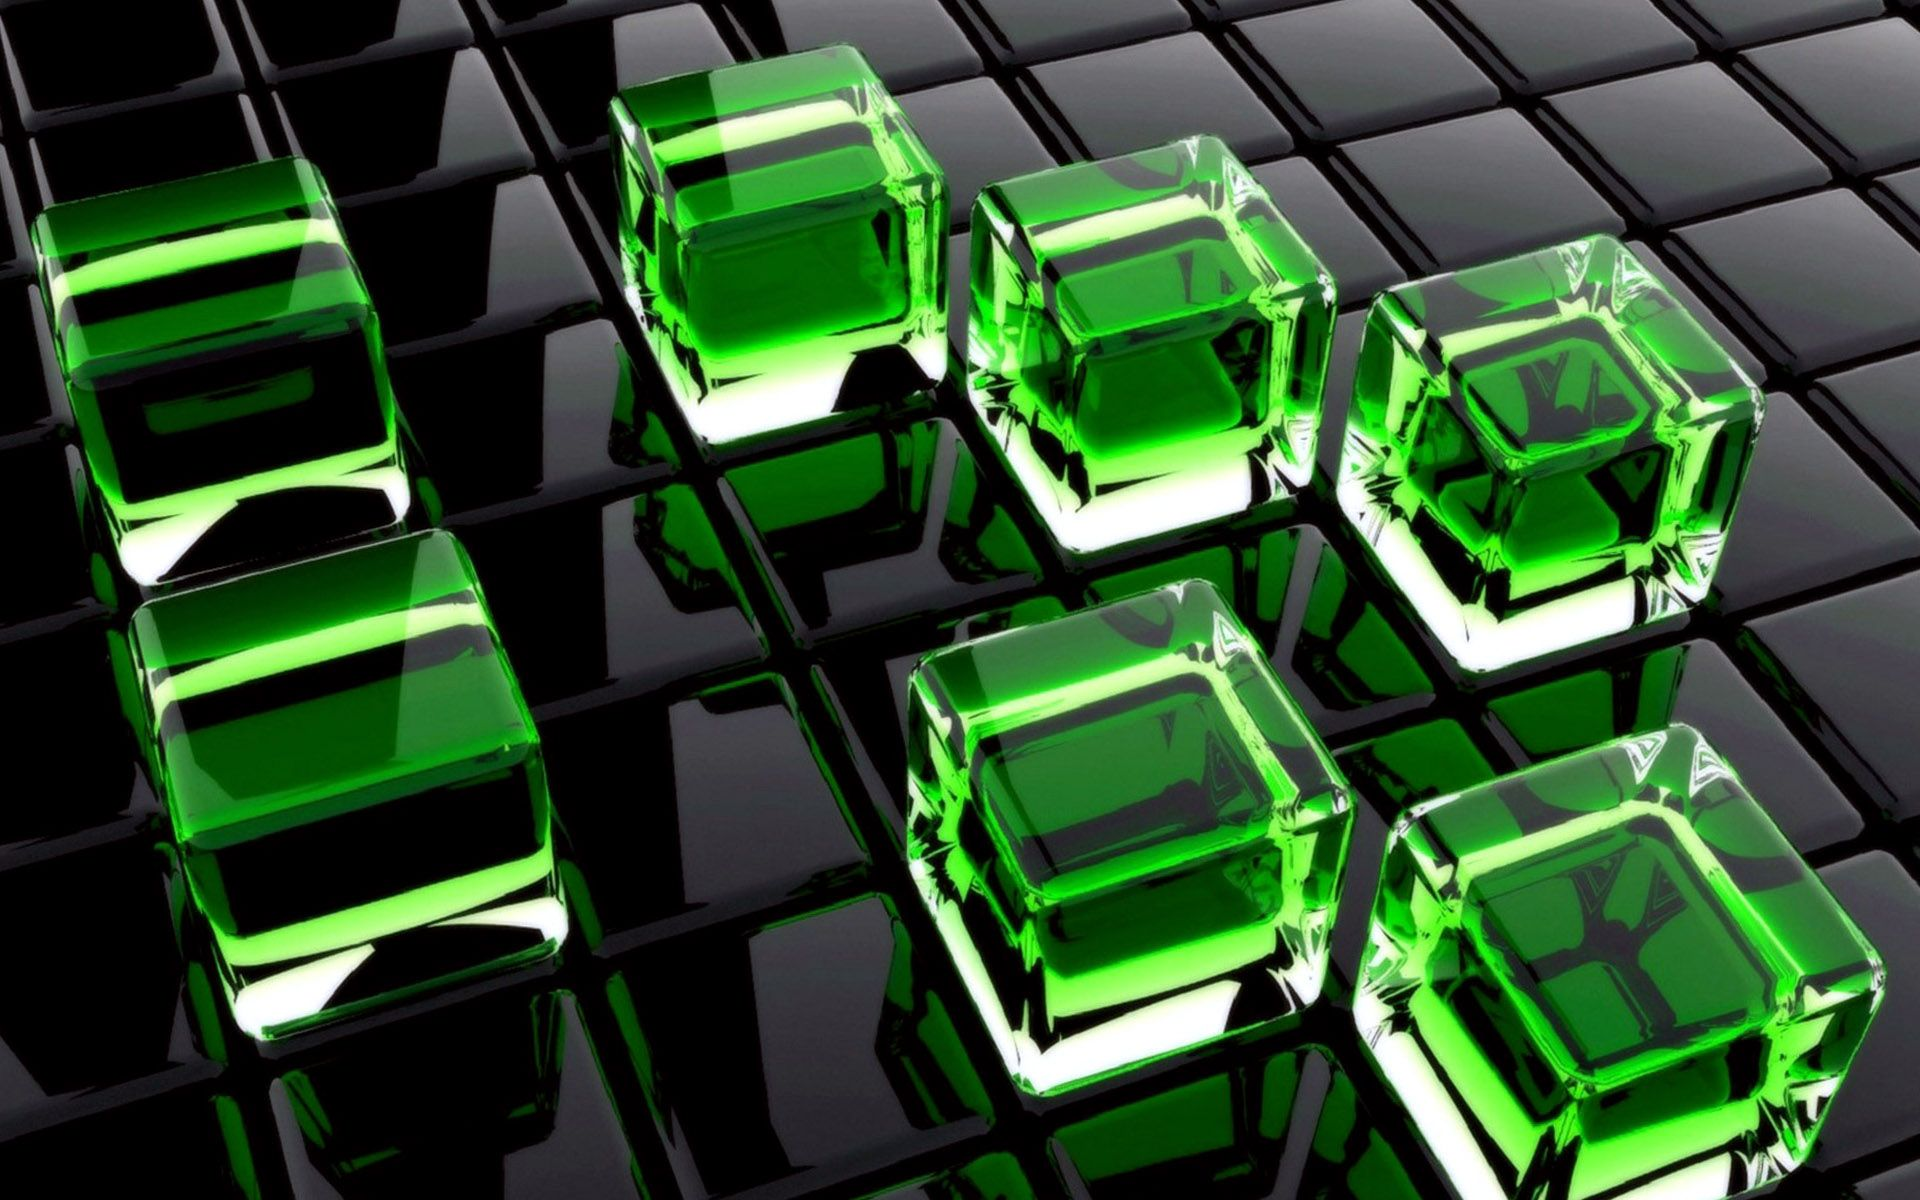 rubiks cube hd wallpapers backgrounds wallpaper | 3d wallpapers